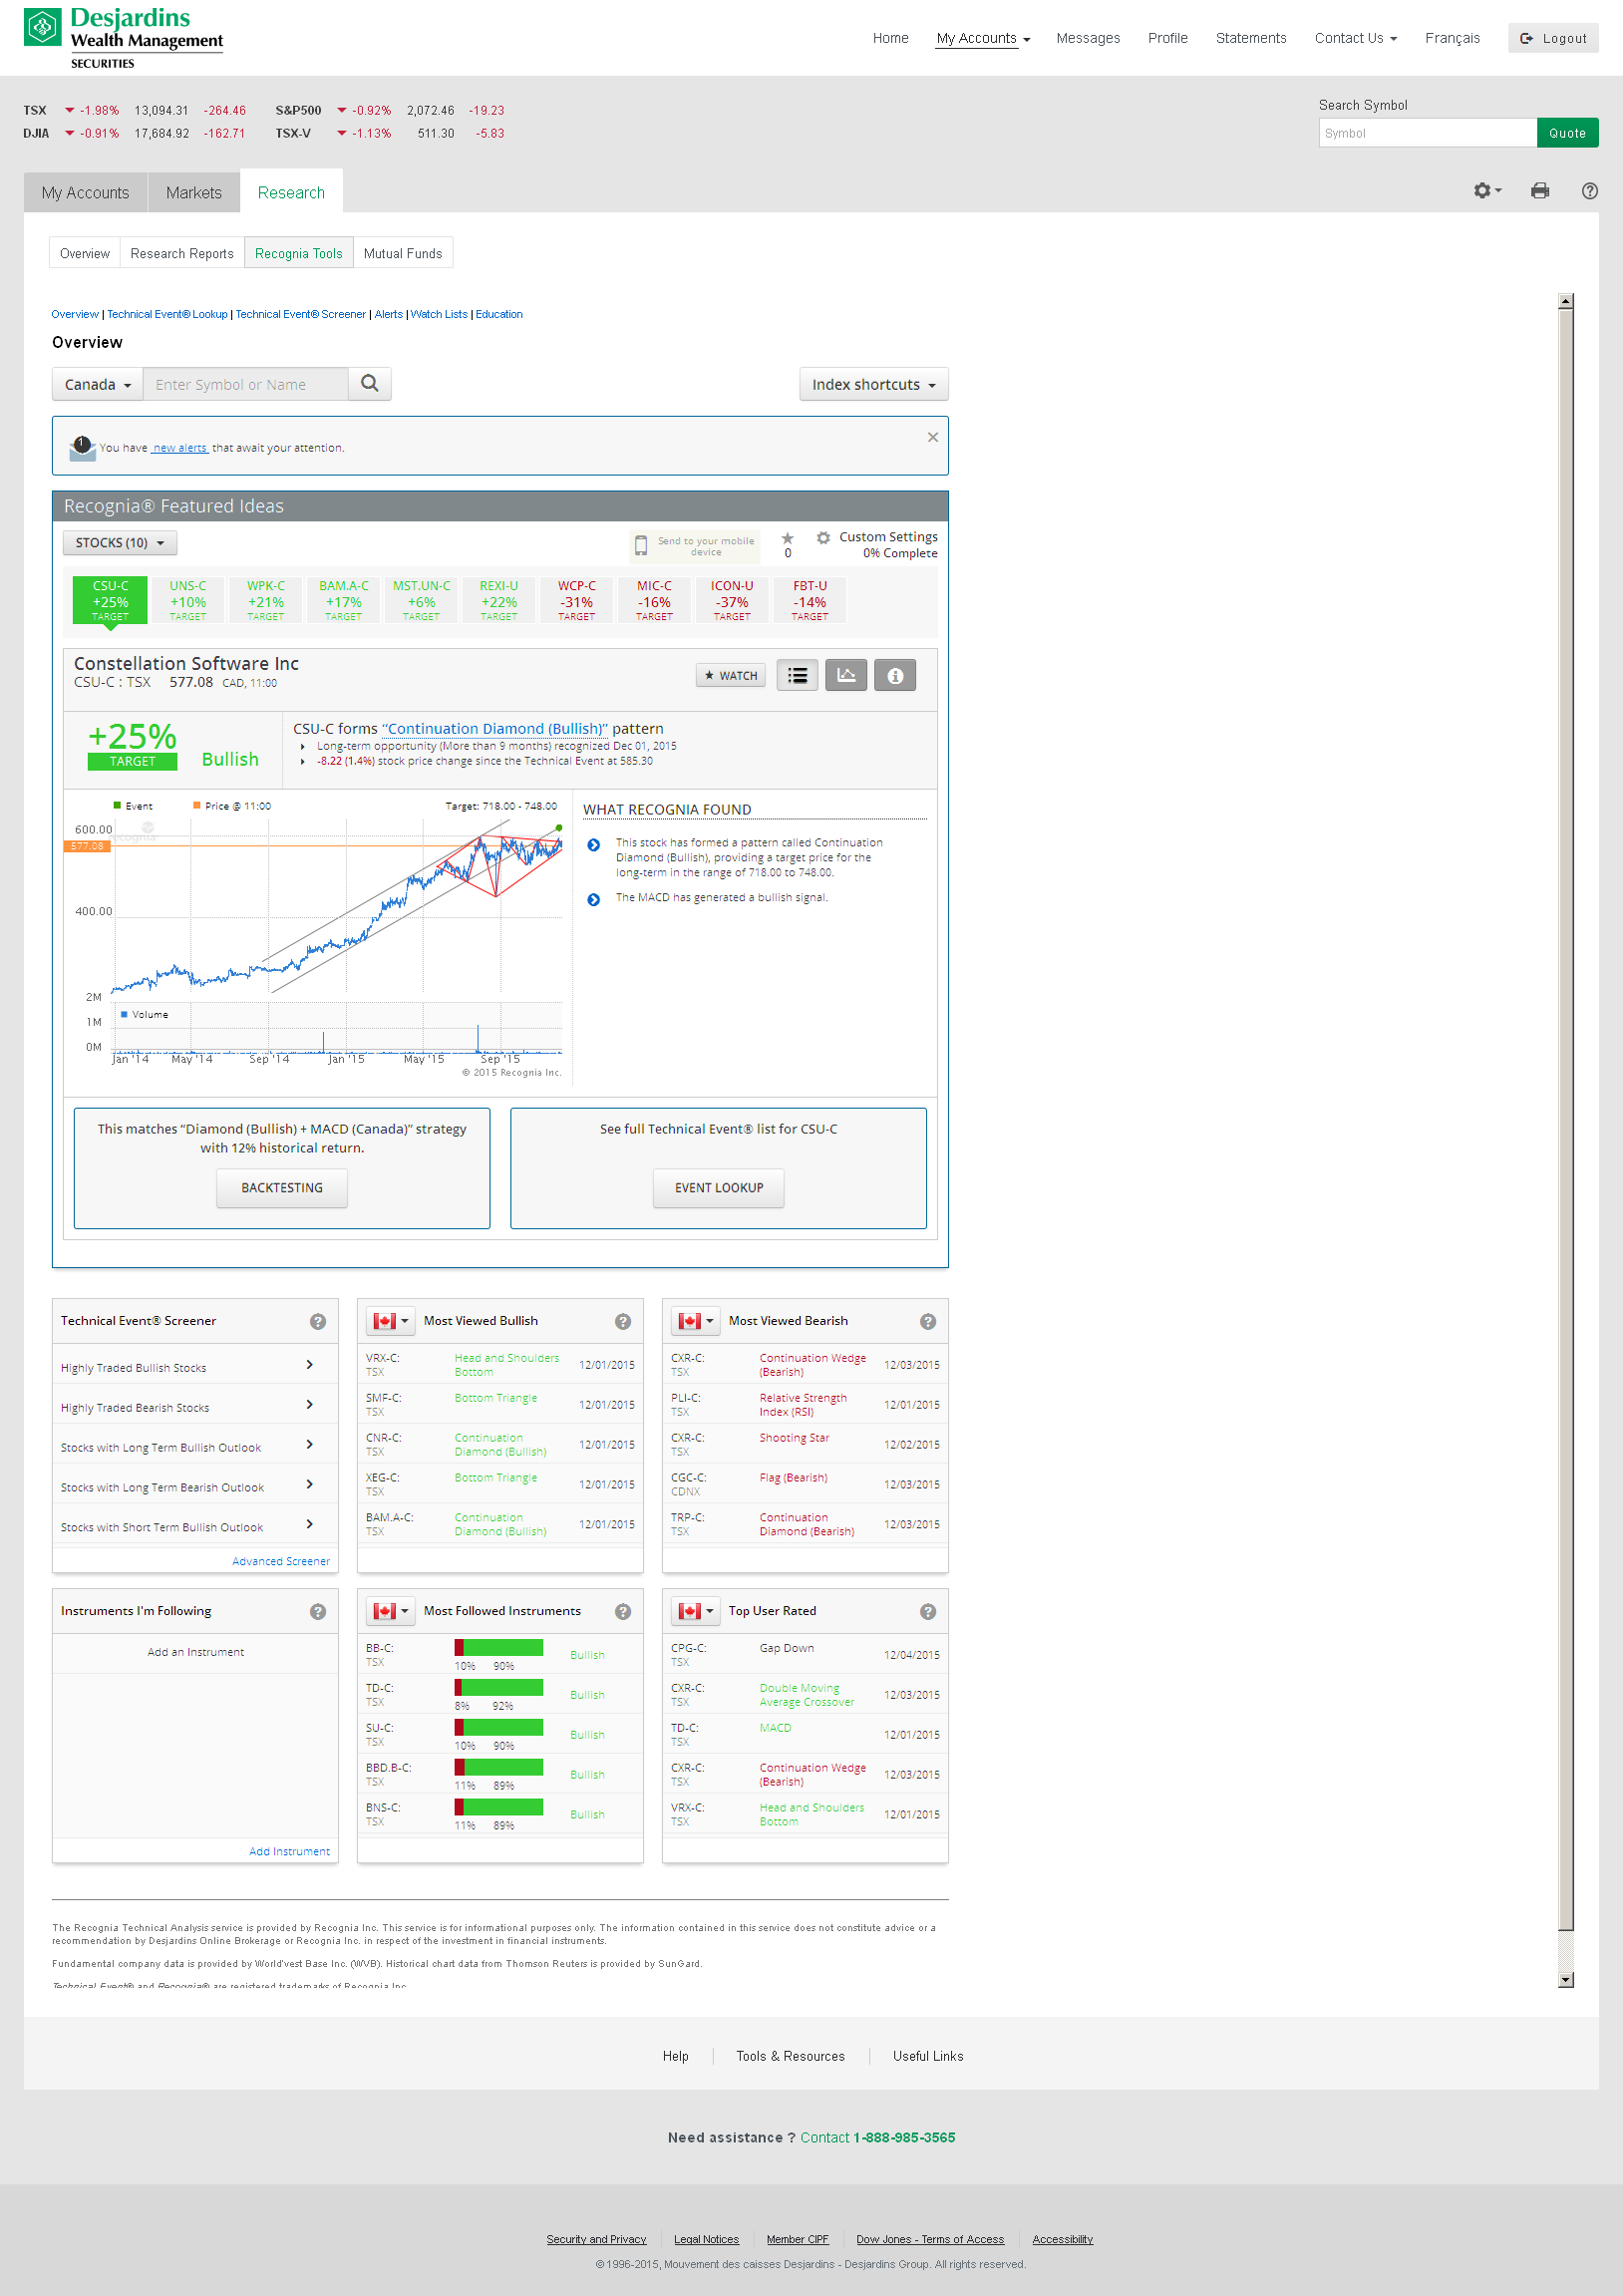 Example - Page with Research Department reports and stock analysis tools